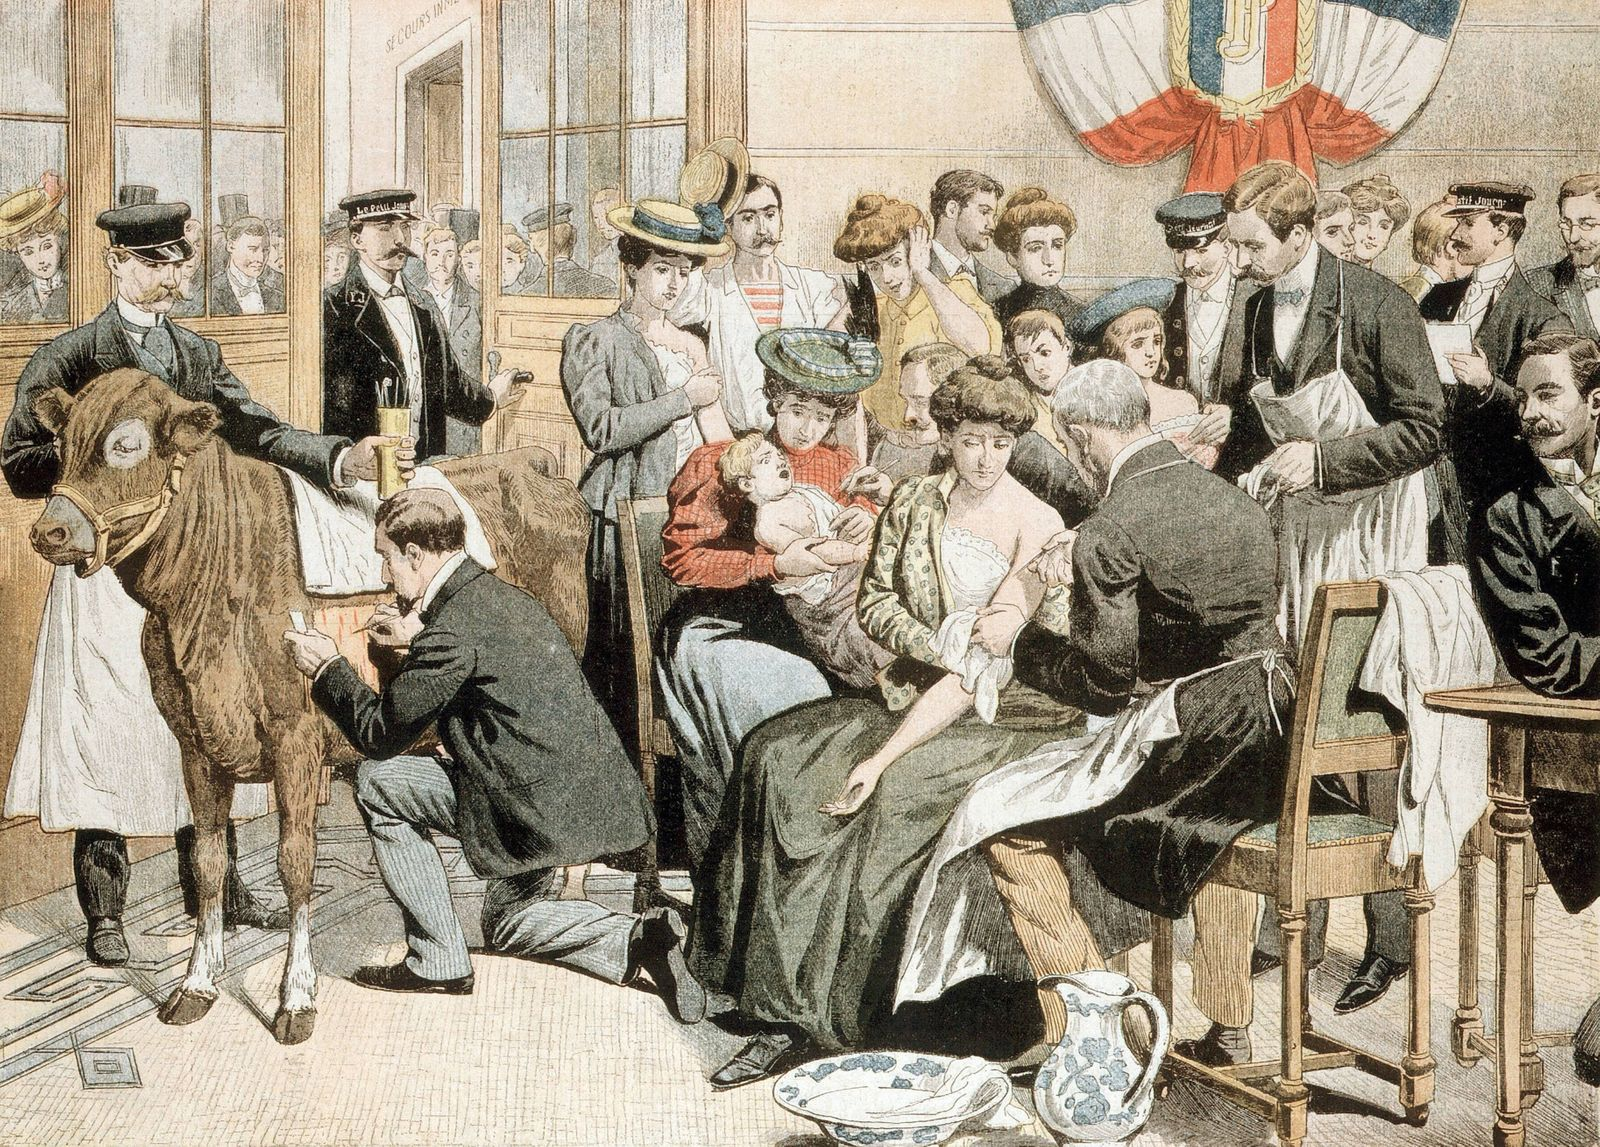 Free vaccination against Smallpox clinic on premises of French newspaper Free vaccination clinic on